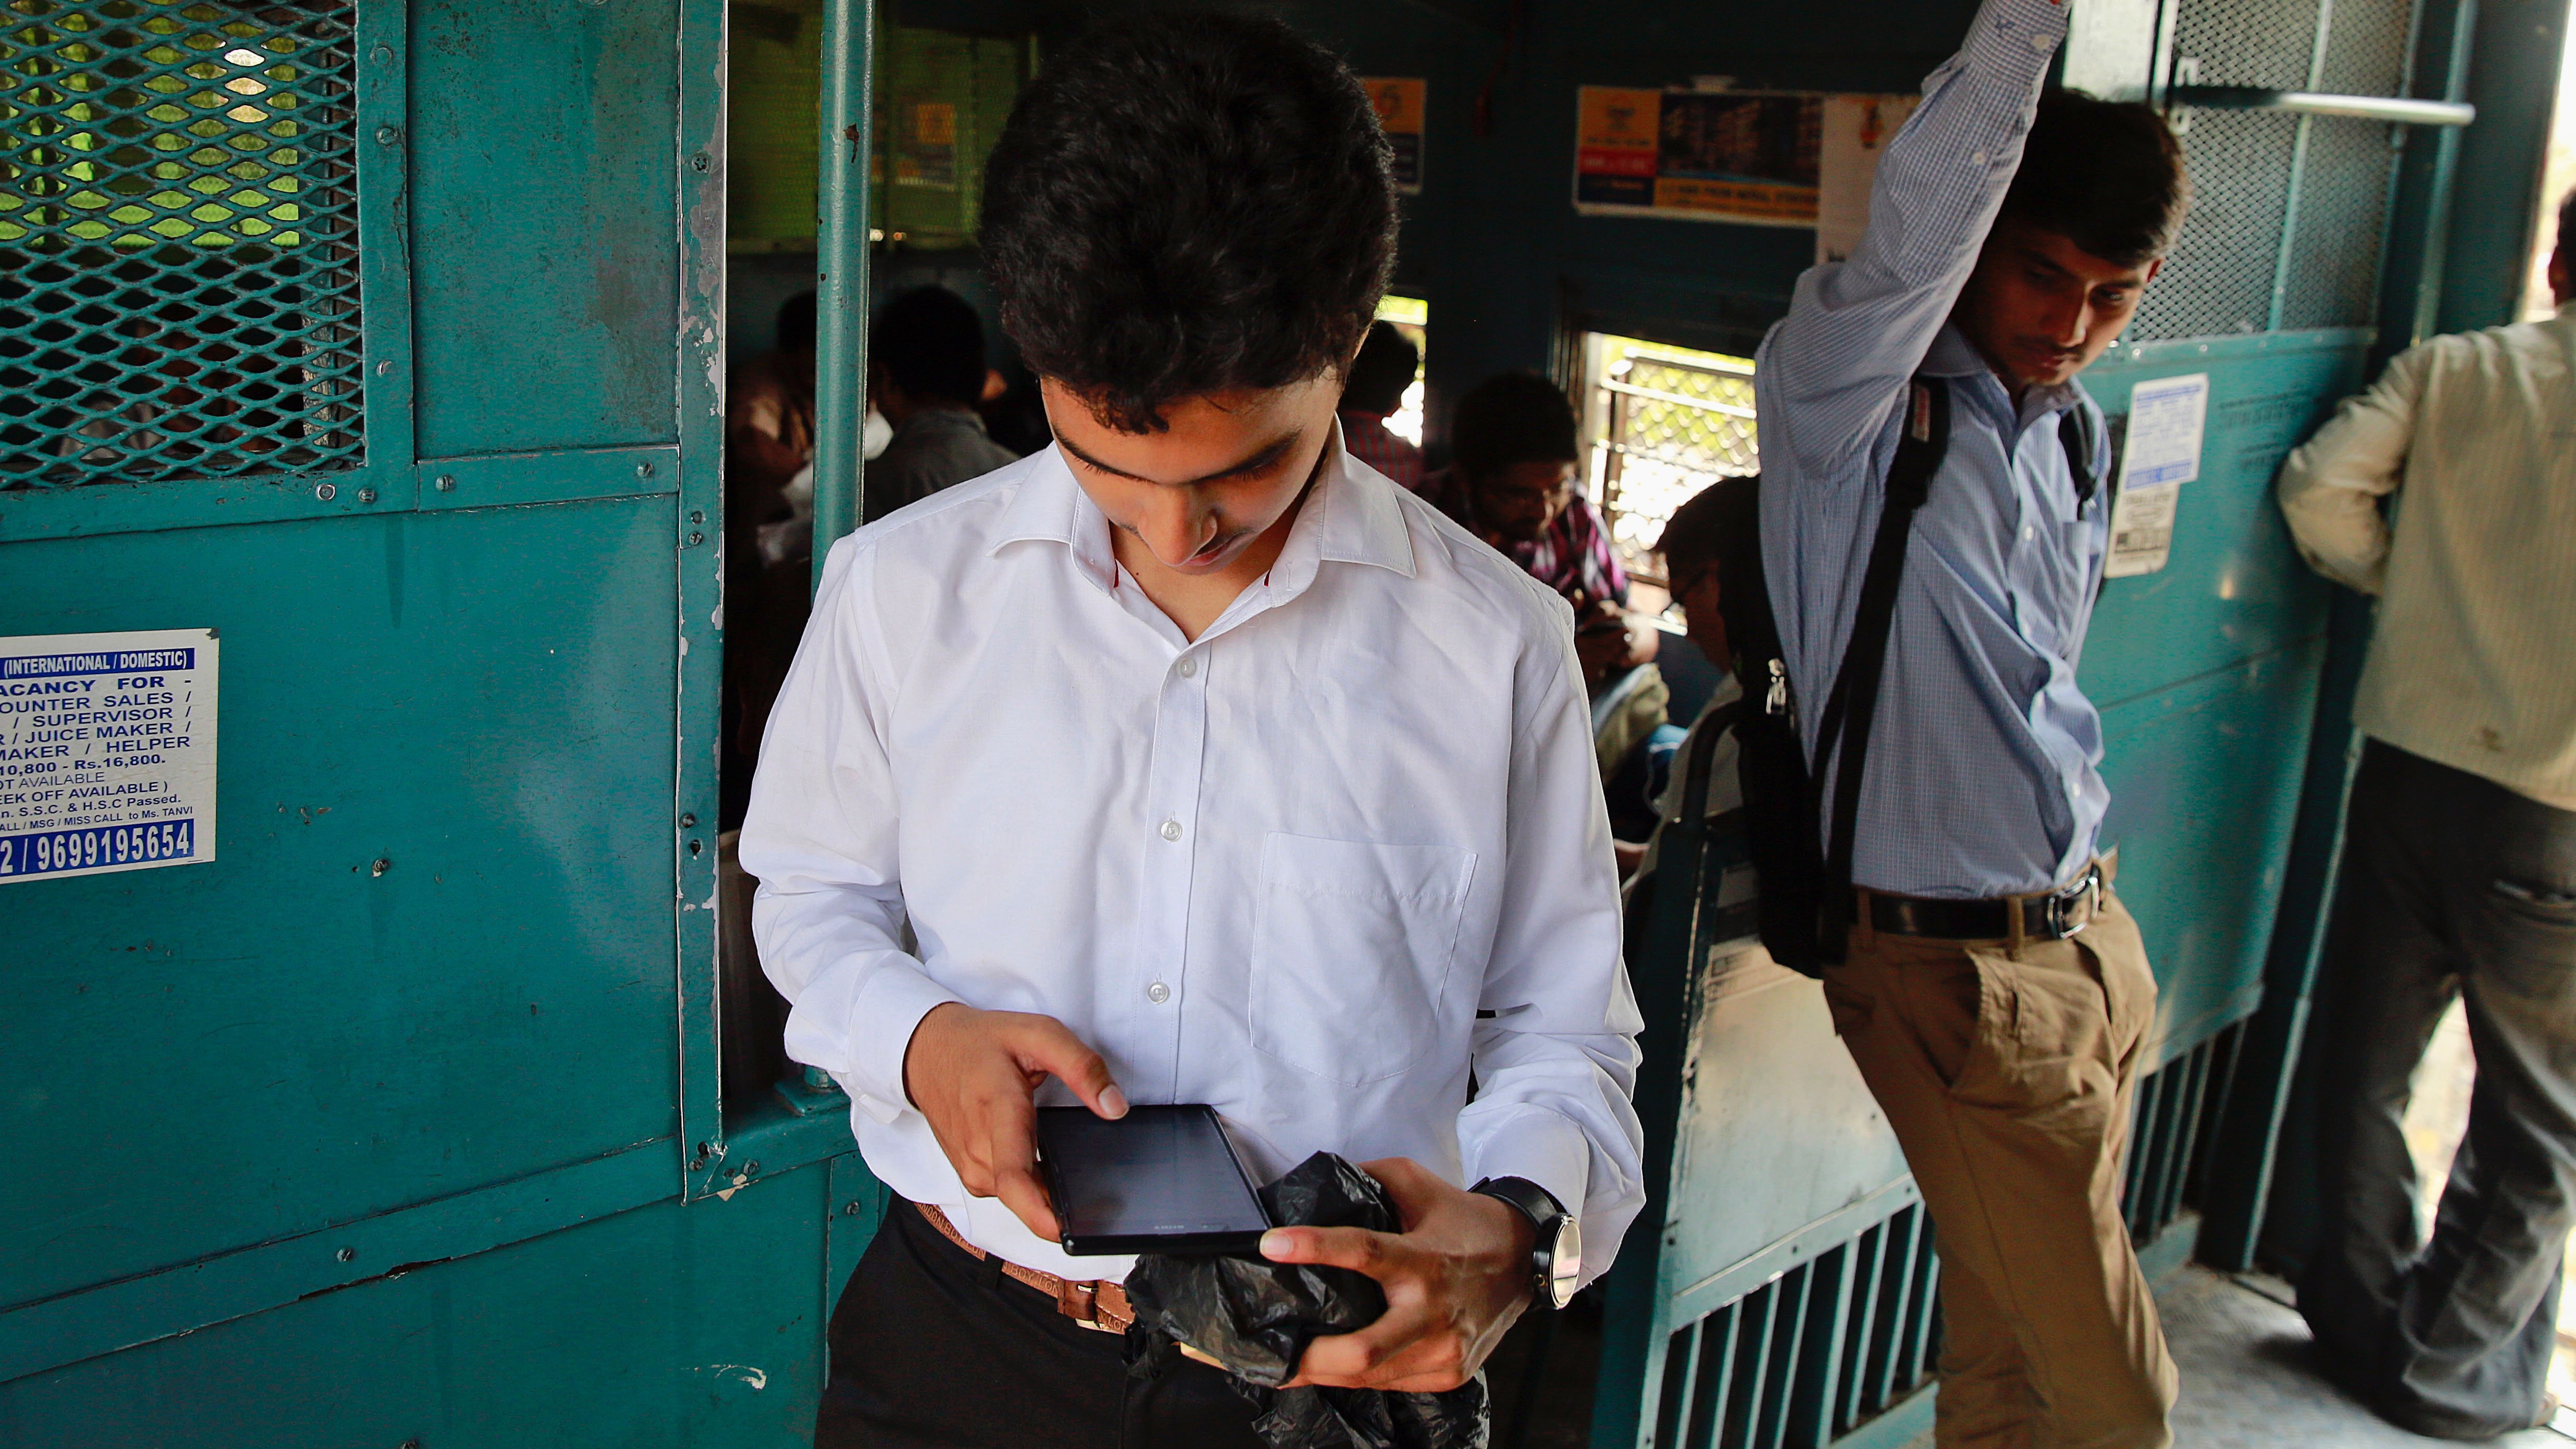 """An Indian man surfs the internet on his smartphone as he travels in a local train in Mumbai, India, Tuesday, March 24, 2015. India's top court affirmed people's right to free speech in cyberspace Tuesday by striking down a provision that had called for imprisoning people who send """"offensive"""" messages by computer or cellphone.The provision, known as Section 66A of the 2008 Information Technology Act, had made sending such messages a crime punishable by up to three years in prison. (AP Photo/Rafiq Maqbool)"""